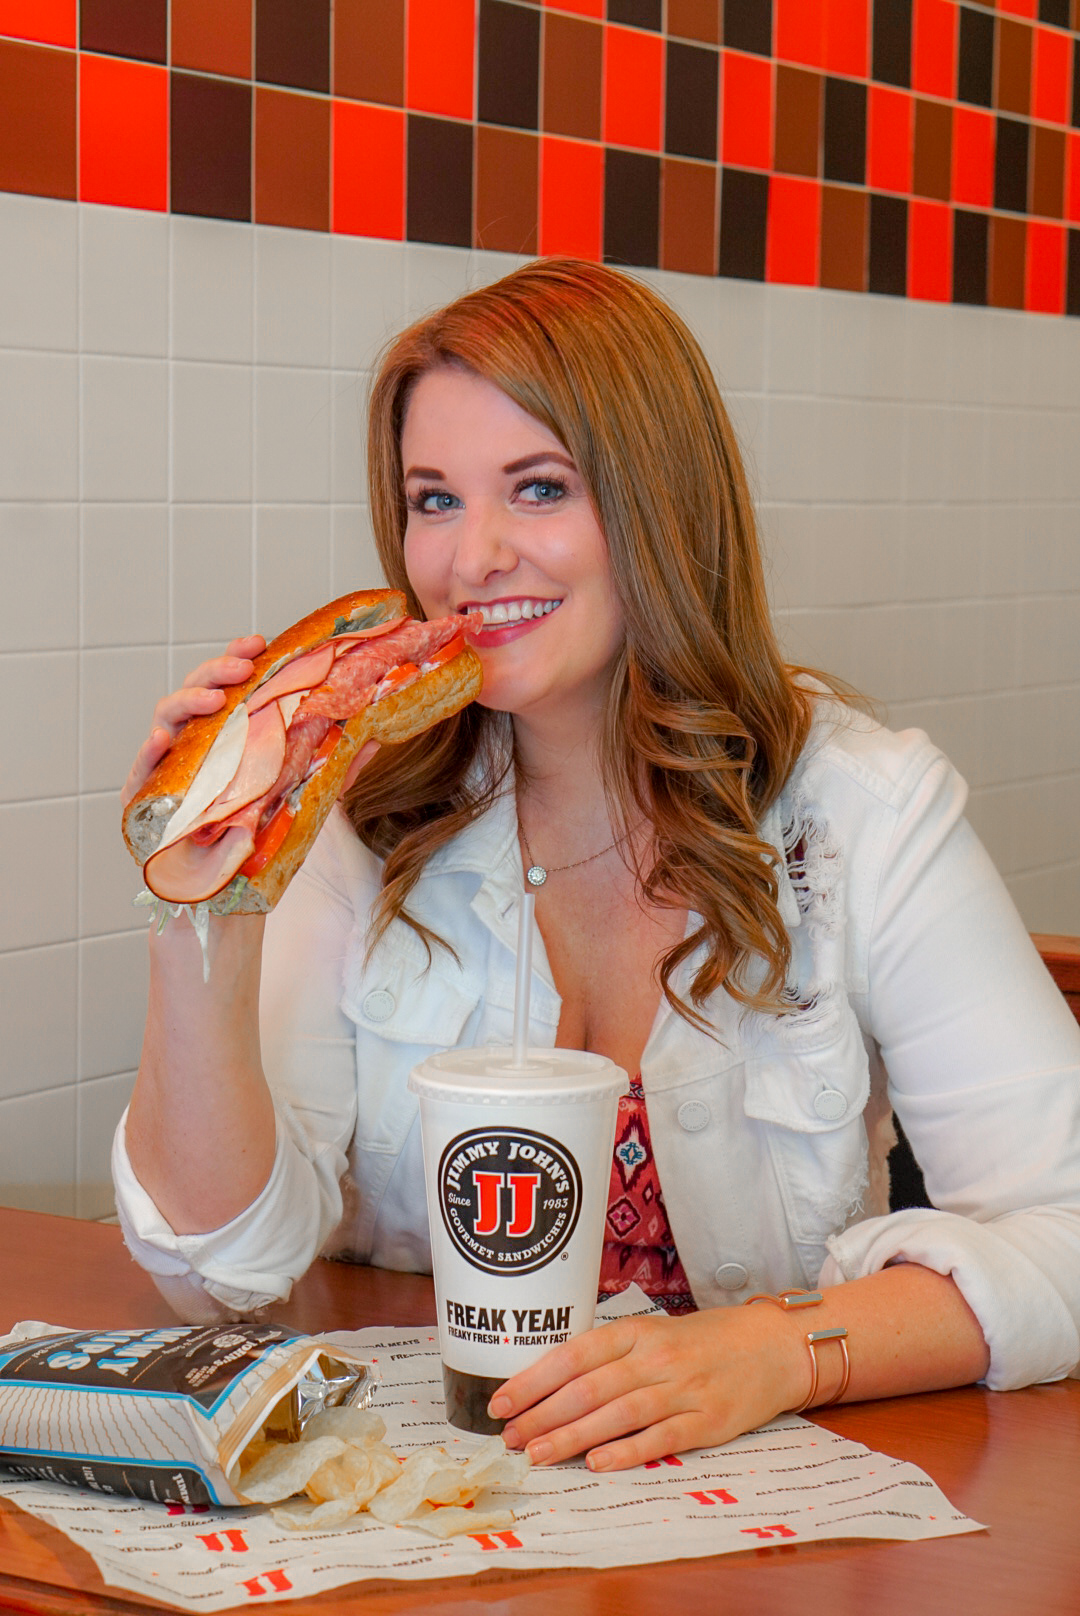 Jimmy John's New Wheat Subs